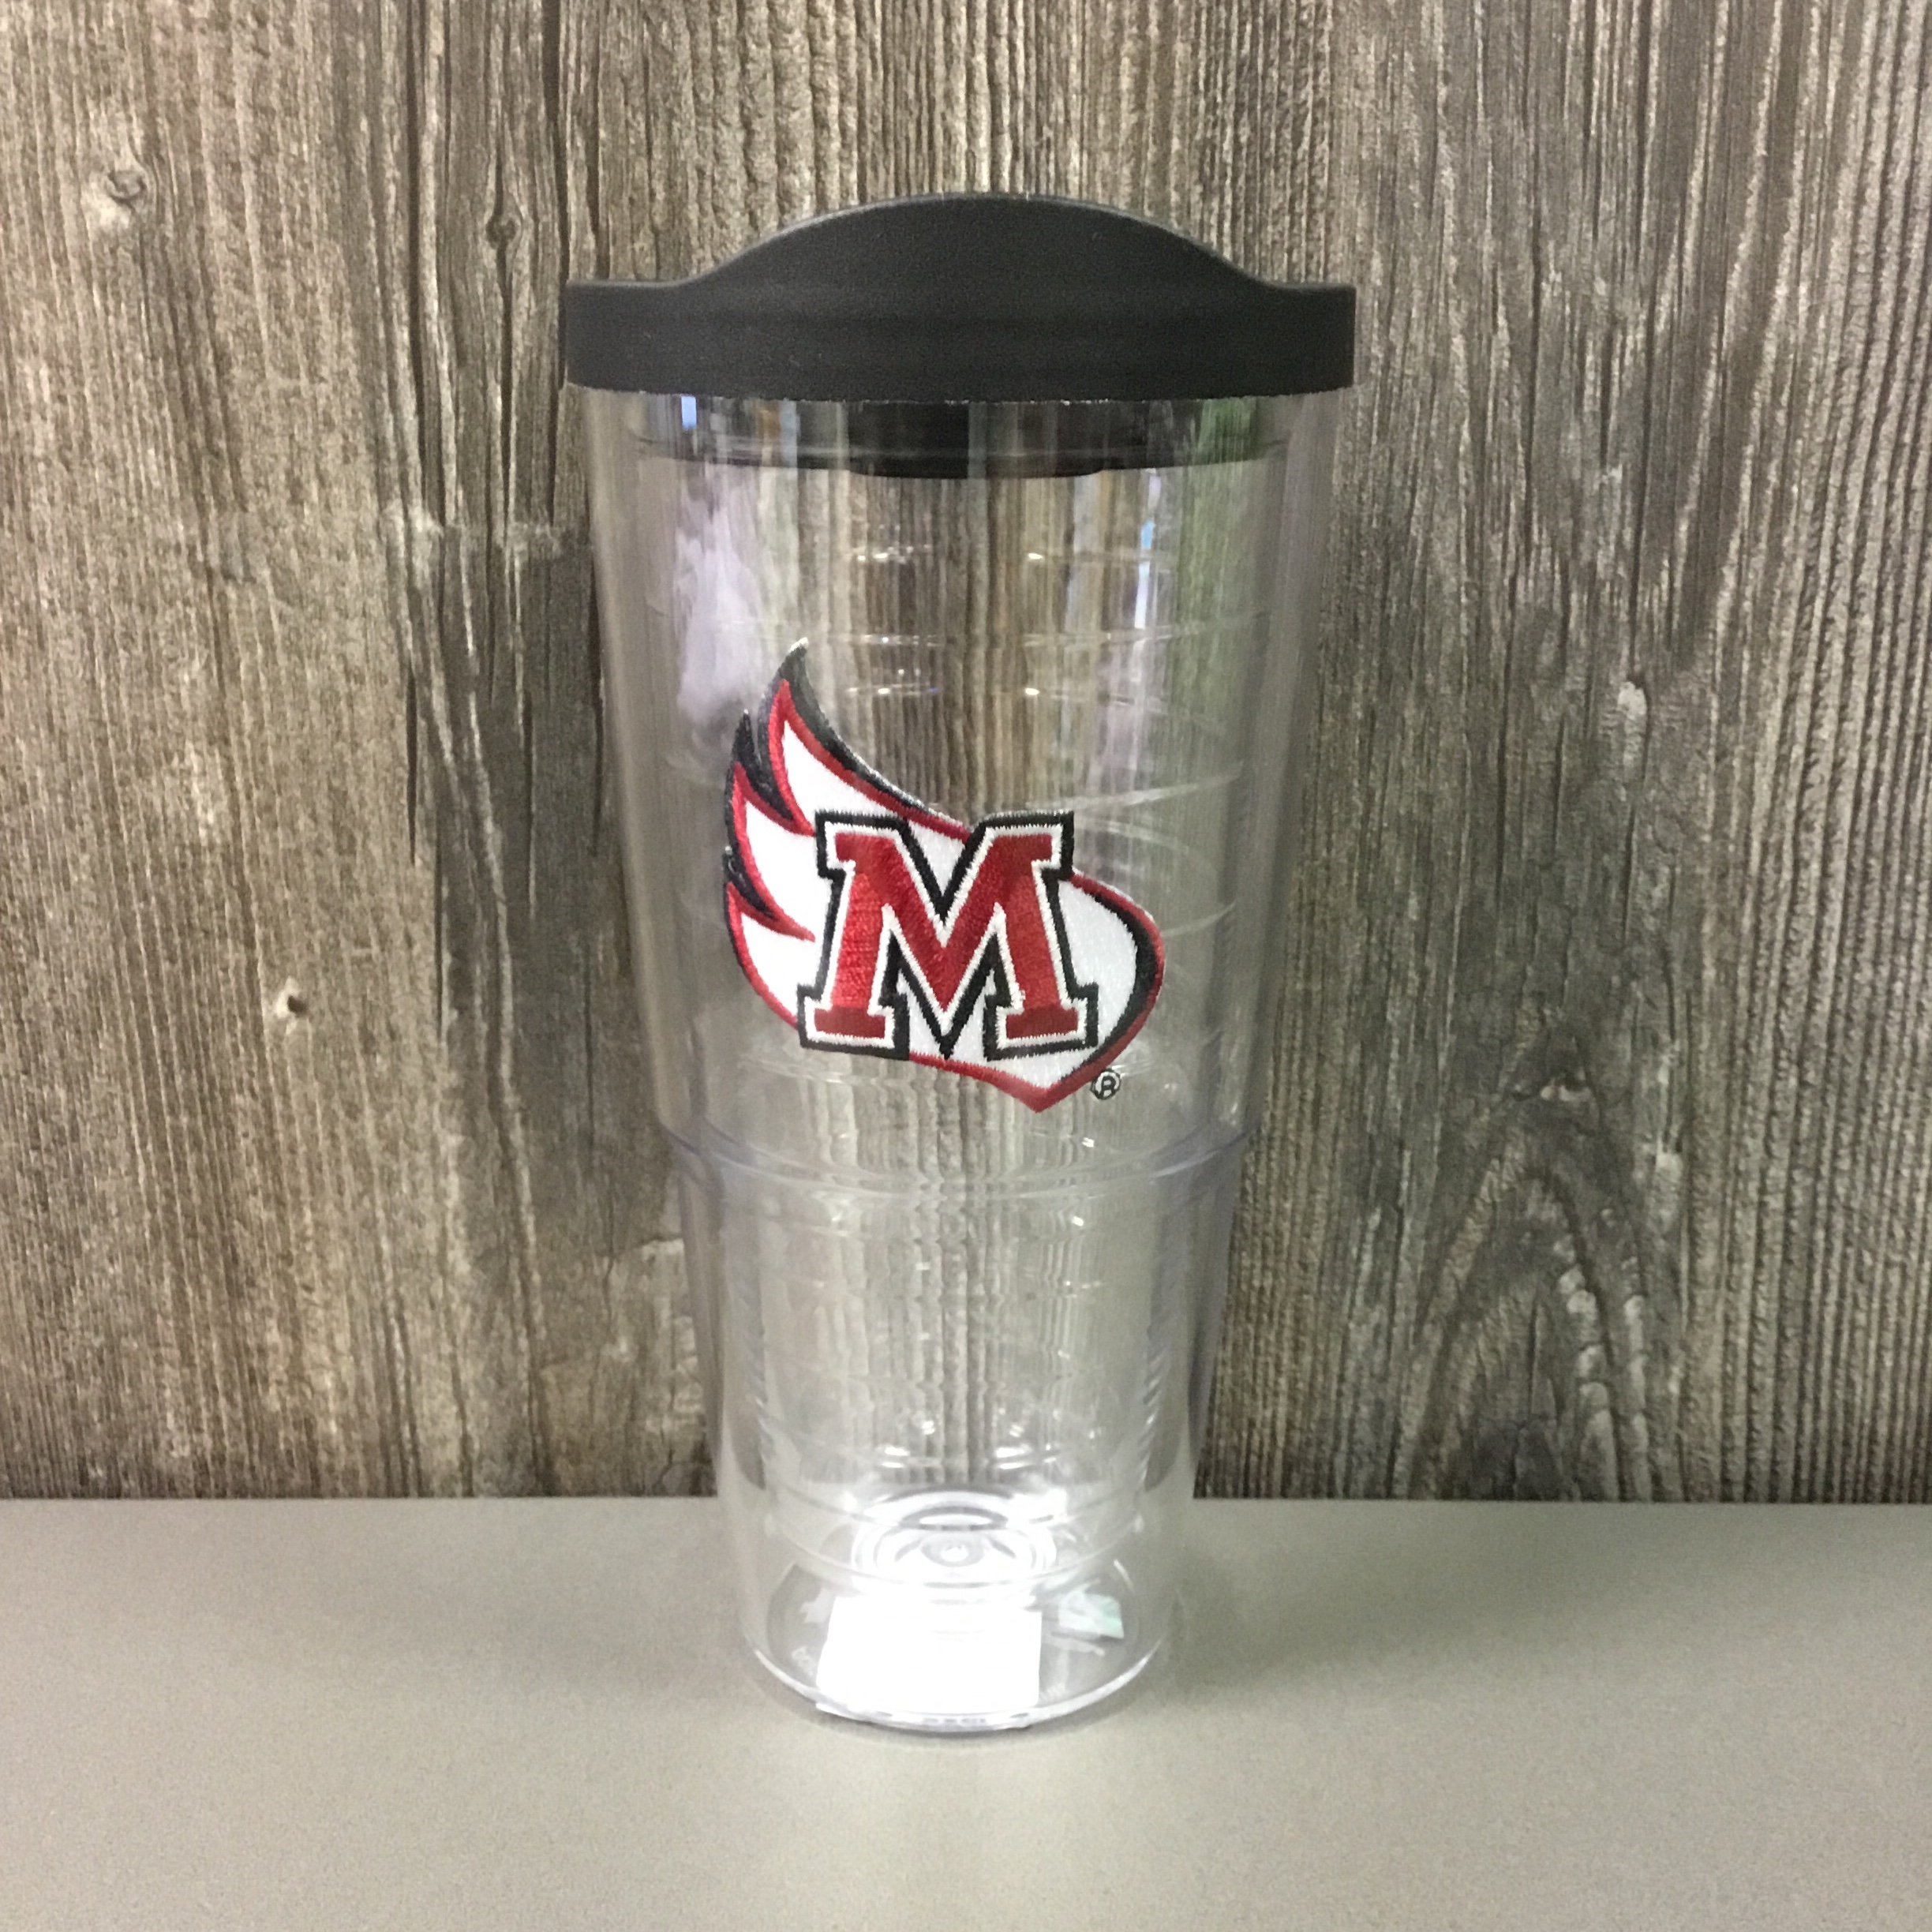 Alternative Image for the Tervis 24 oz. Tumbler product